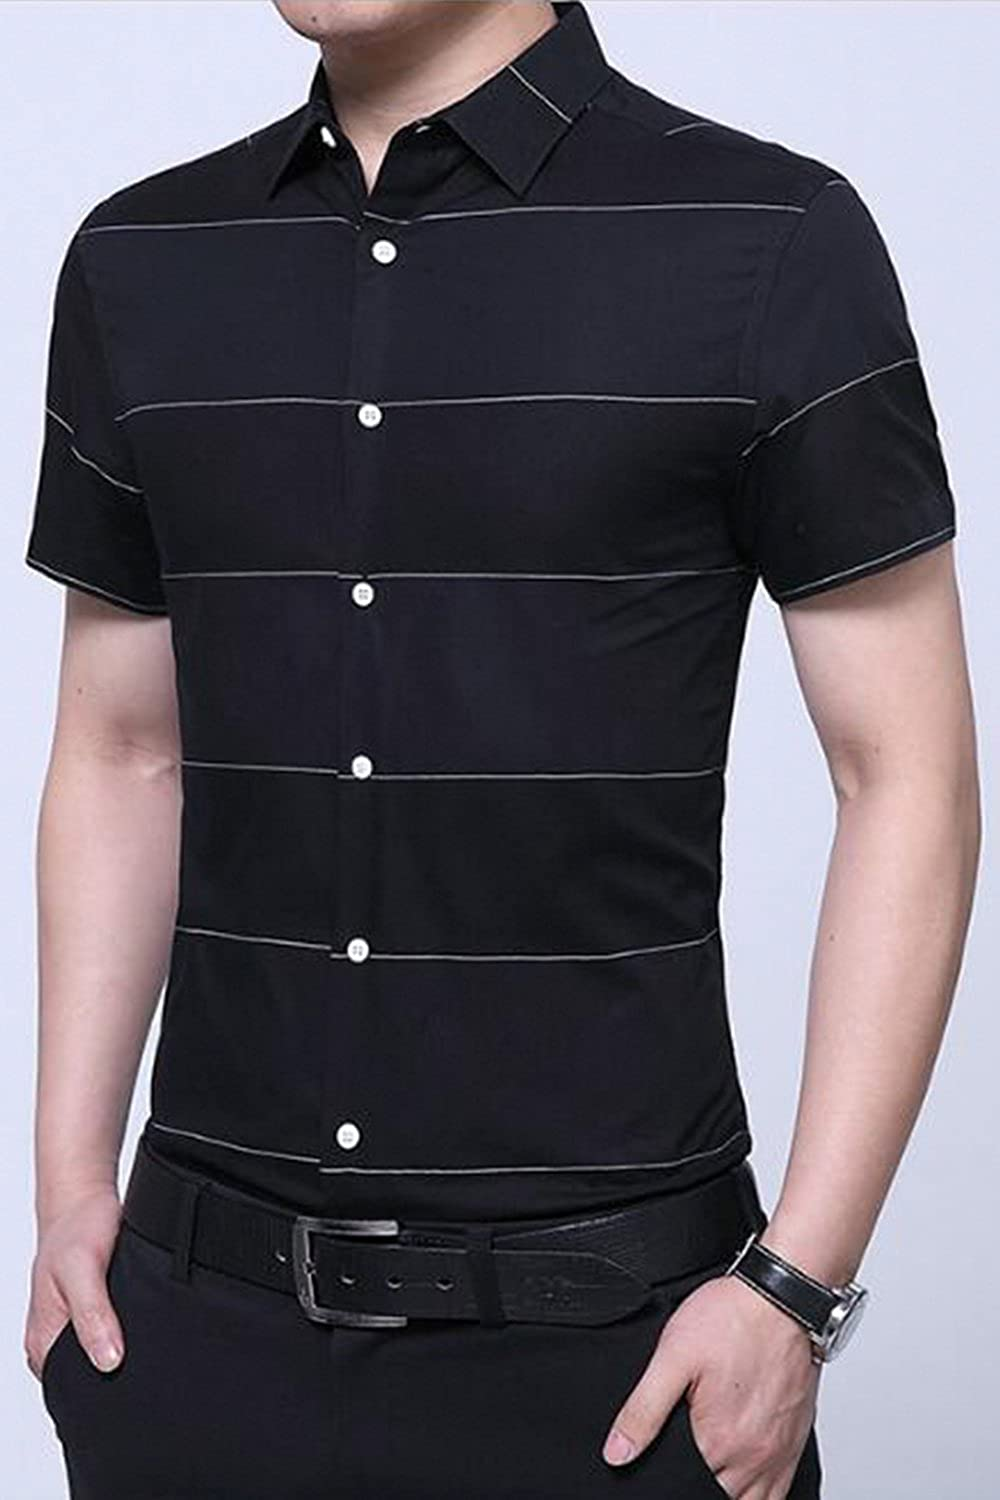 Vepodrau Men Button Down Short Sleeve Collared Slim Stripes Top Shirt